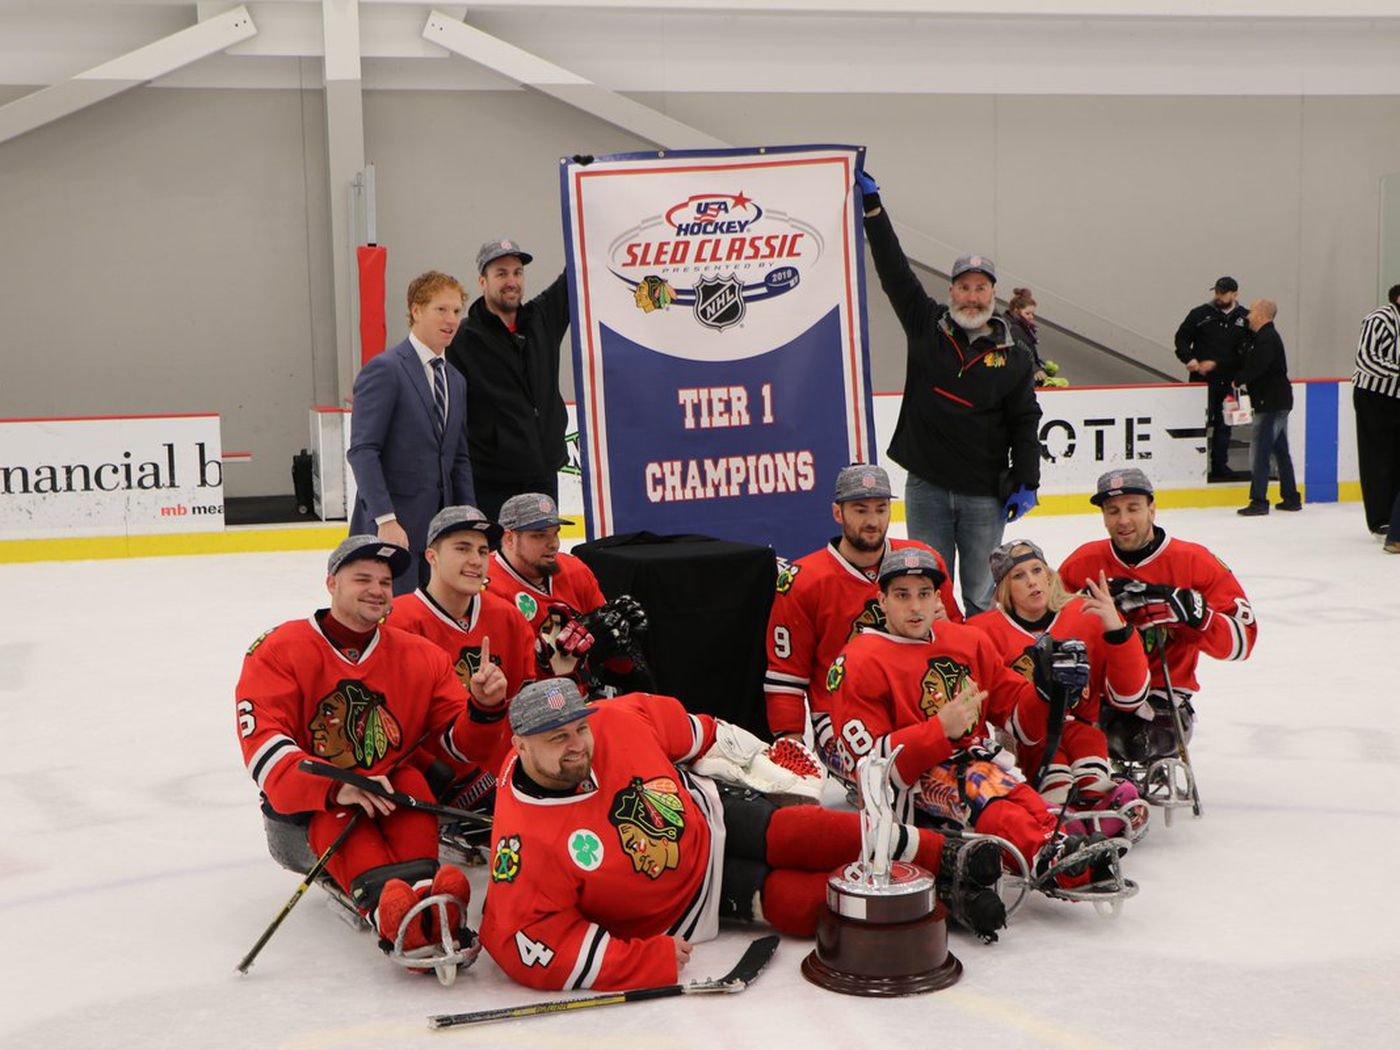 2019 USA Hockey Sled Classic results: Blackhawks repeat as